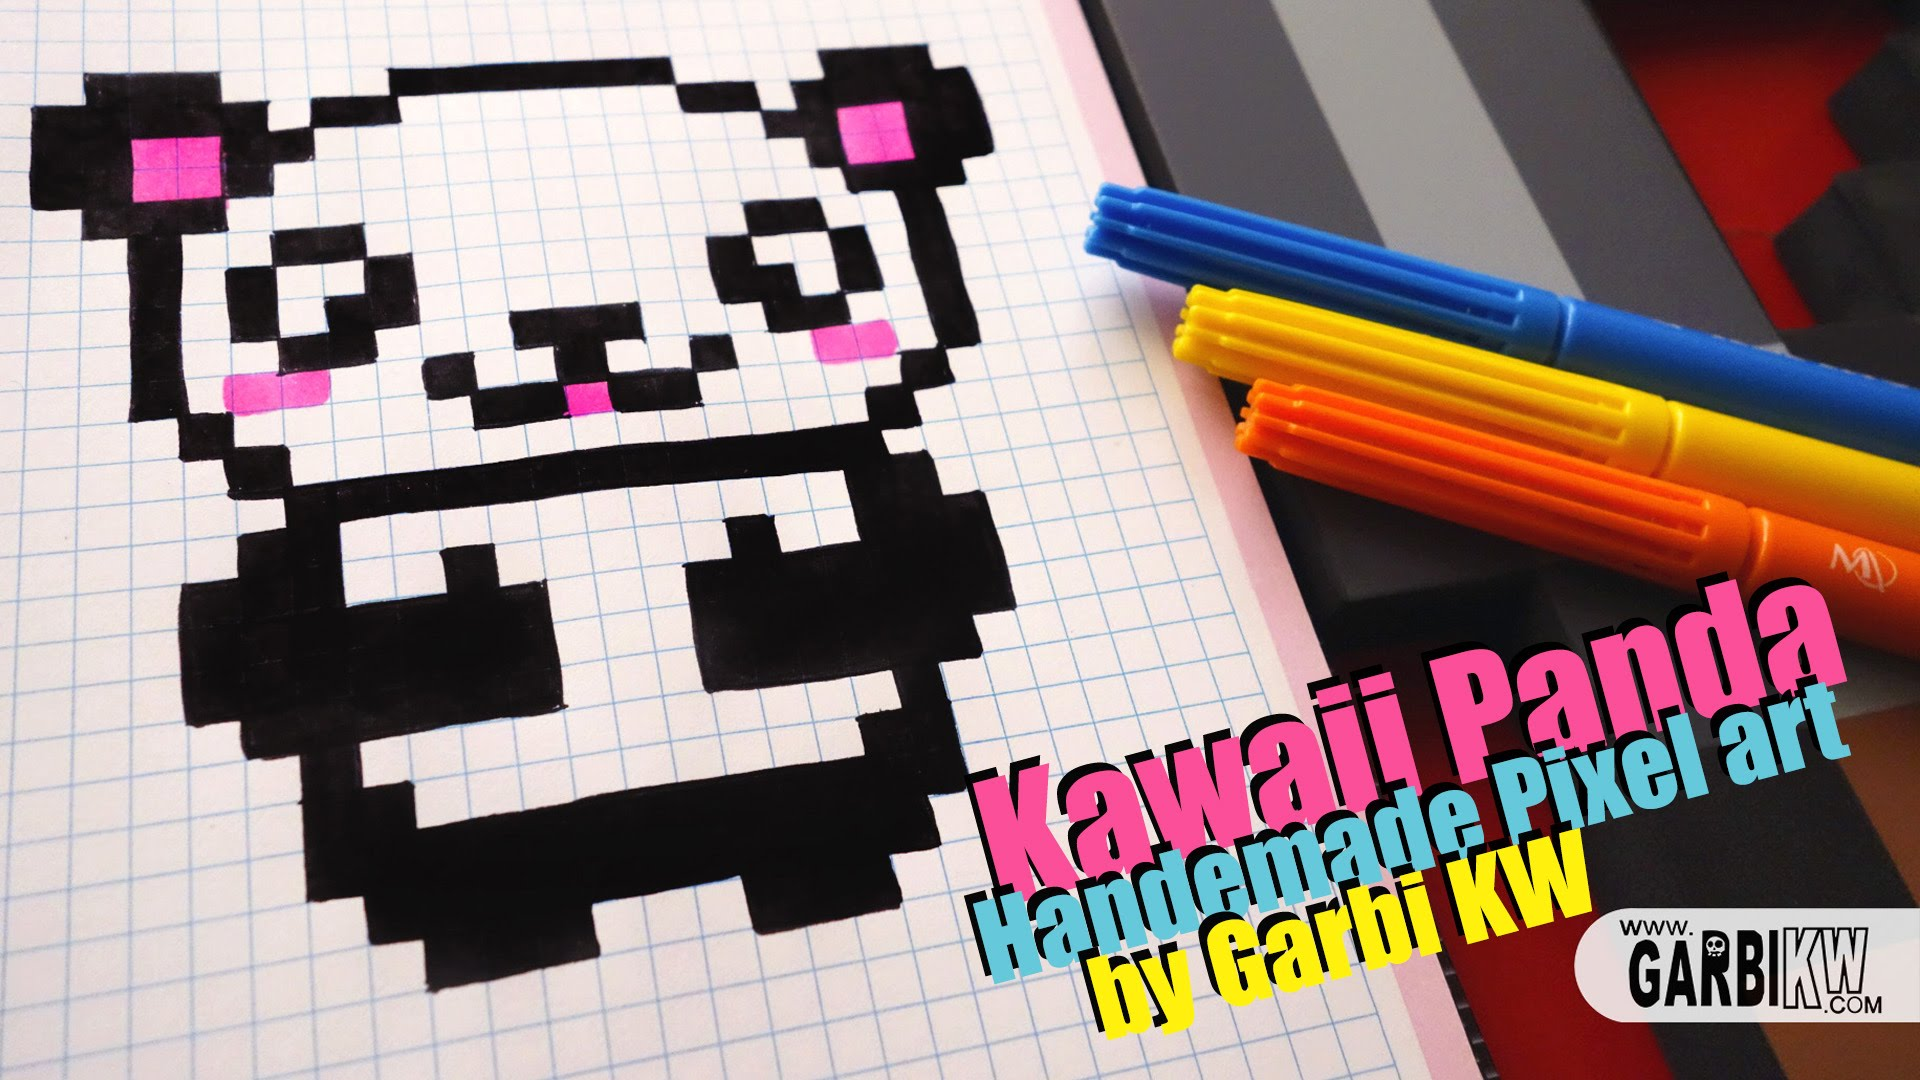 Drawn pixel art garbi kw Pixel by Panda Garbi Pixel